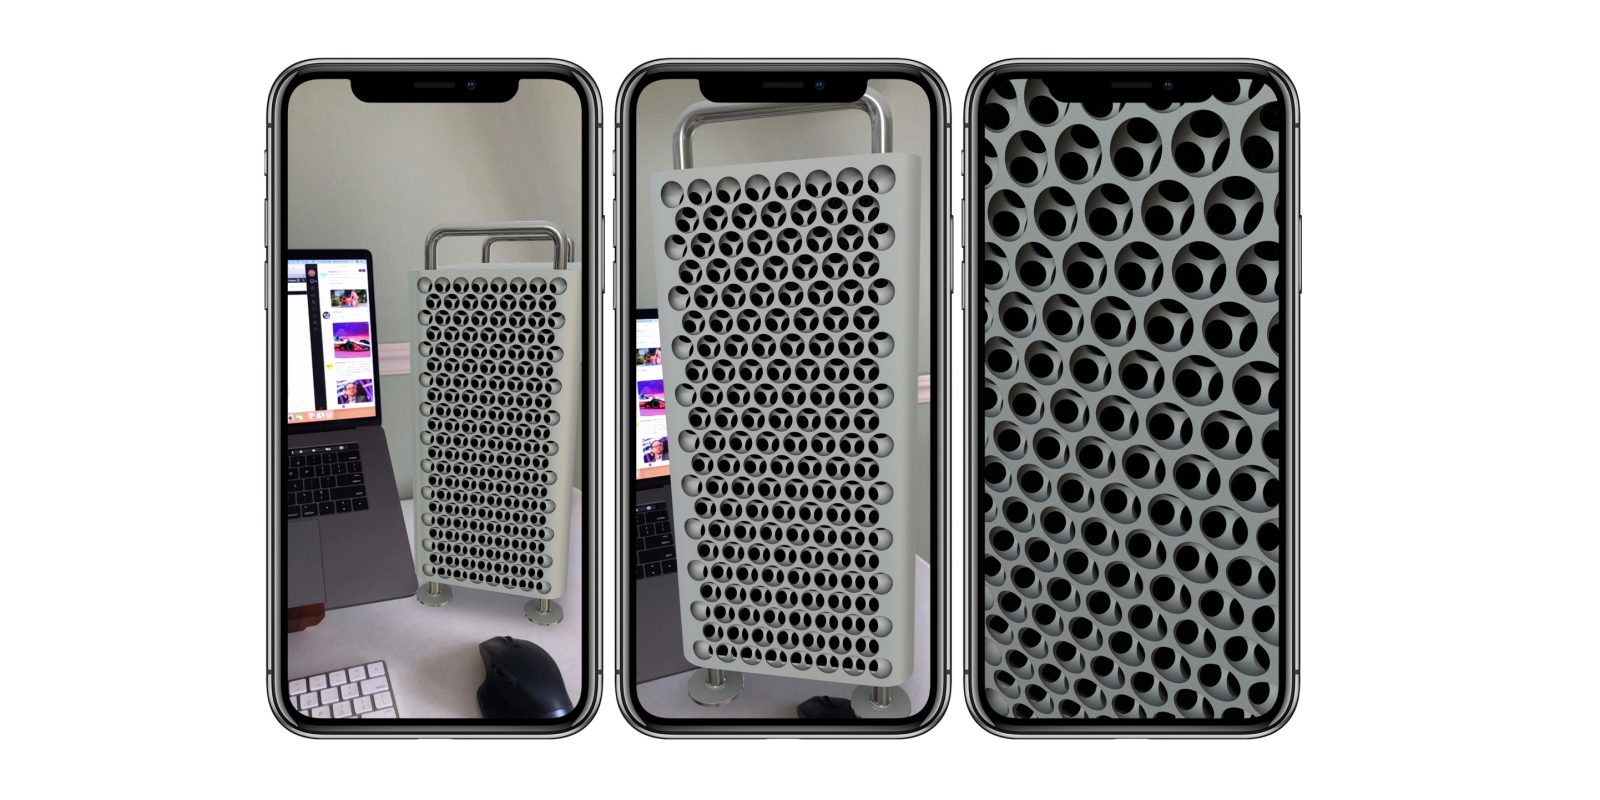 Apple's Mac Pro AR tool is great for making a slick iPhone